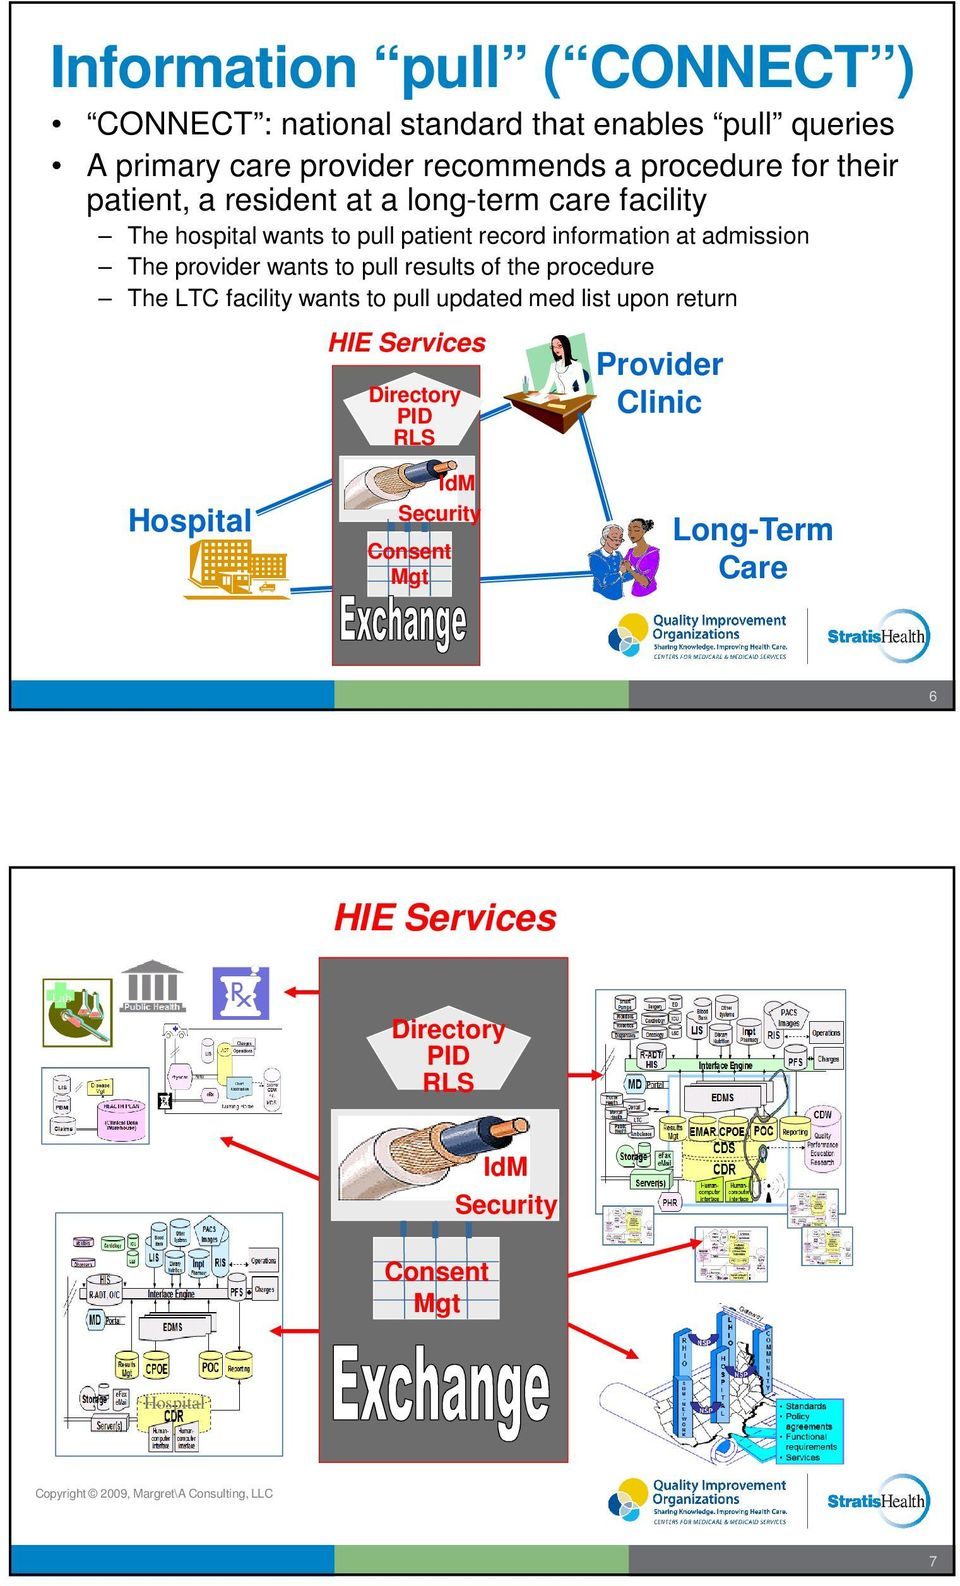 procedure The LTC facility wants to pull updated med list upon return HIE Services Directory PID RLS Provider Clinic Hospital IdM Security Consent Mgt